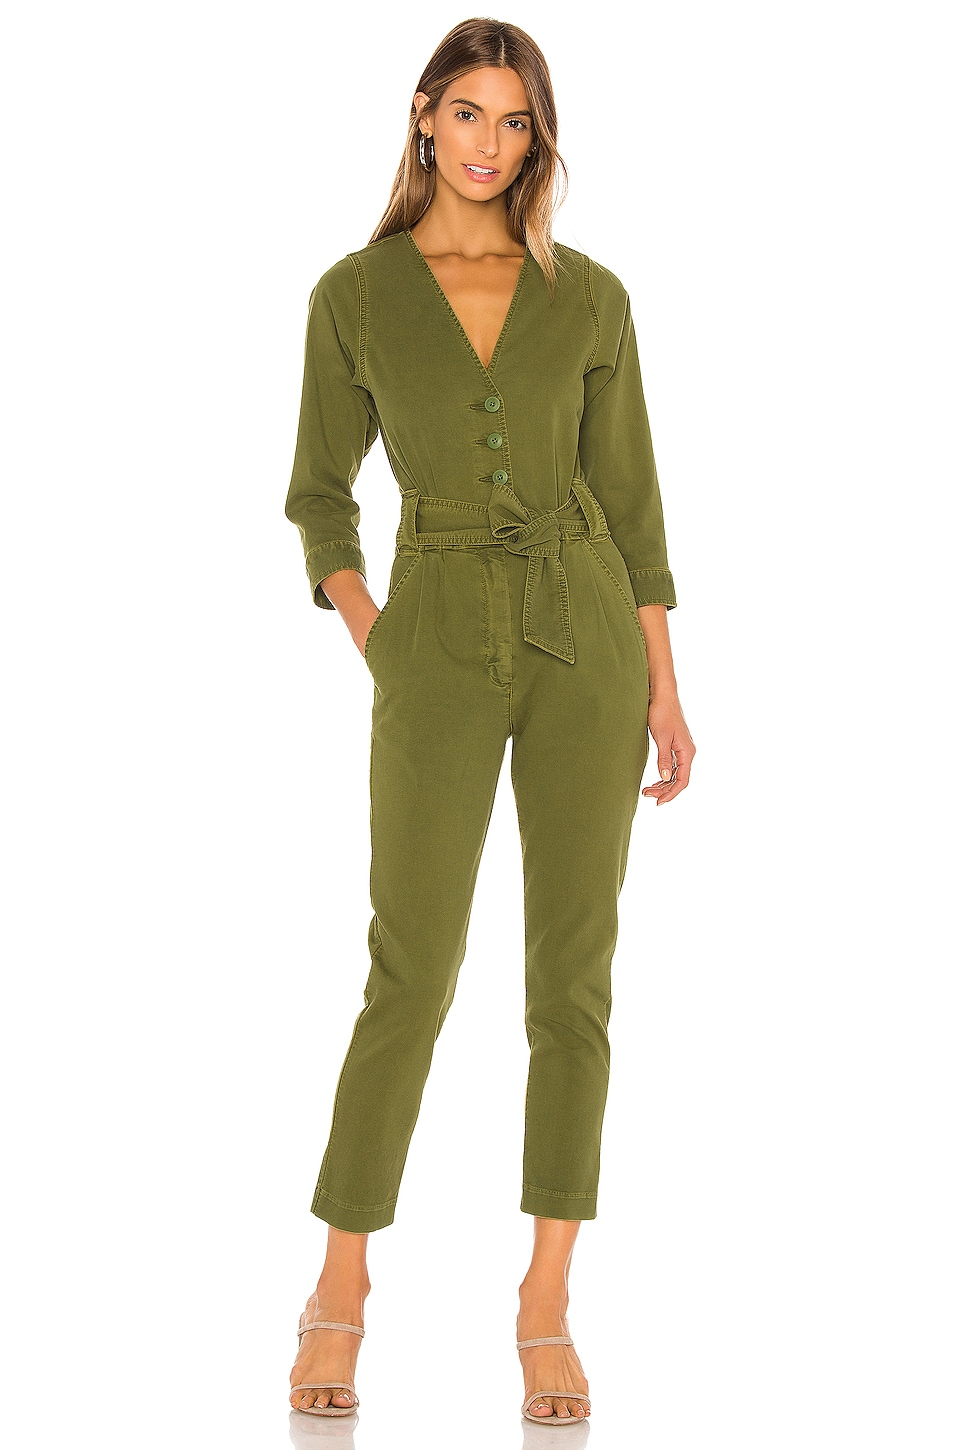 Joie Sashan Jumpsuit in Chive